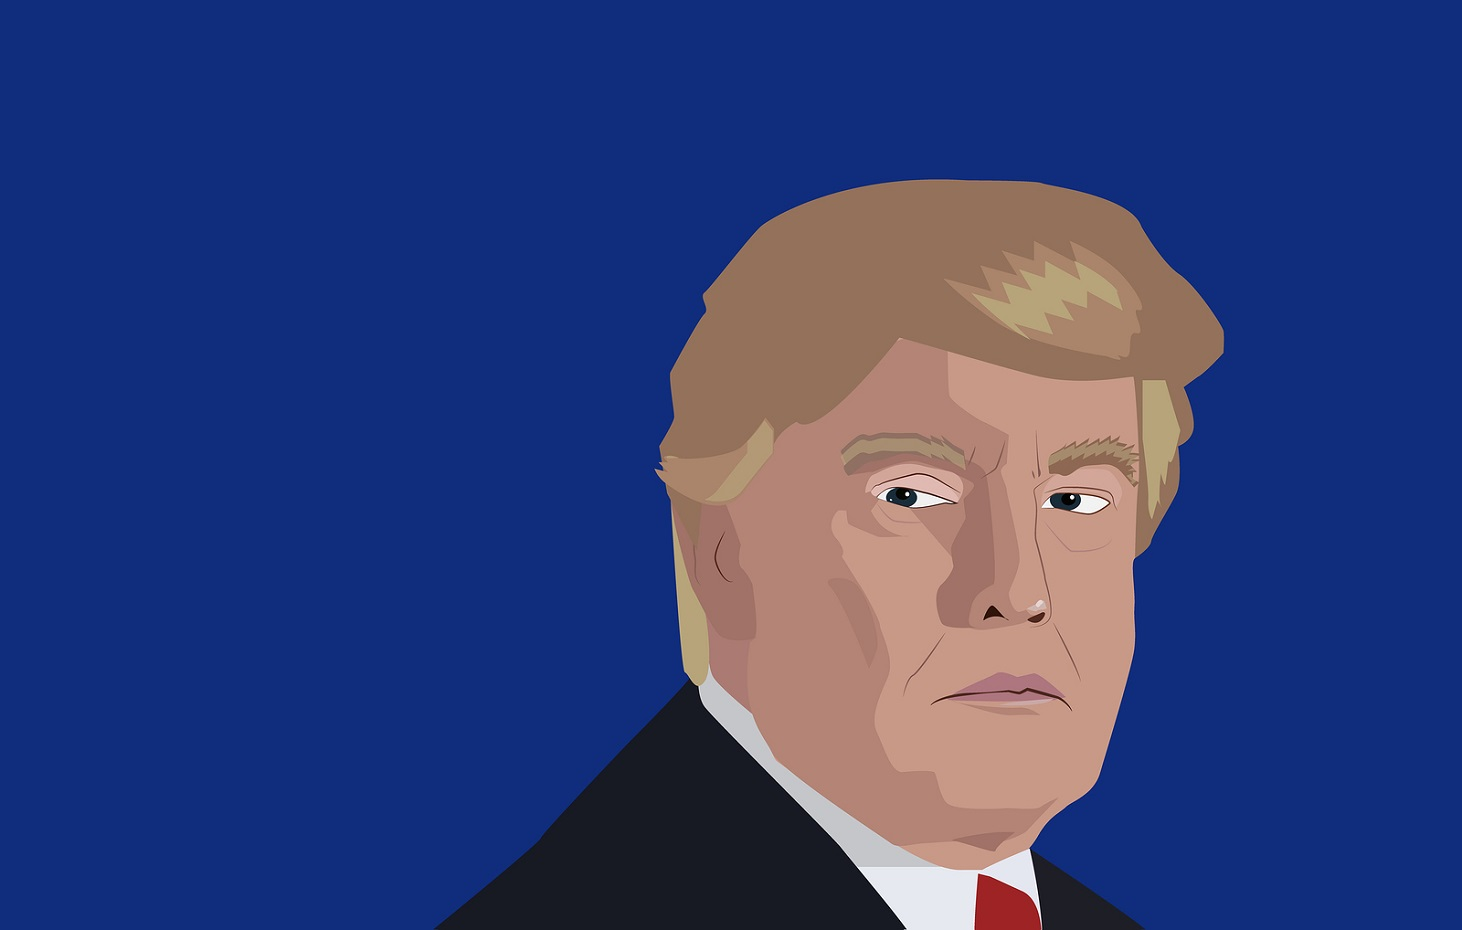 Dec, 2017: Donald Trump portrait on a blue background. Vector illustration of the President of United States Donald Trump